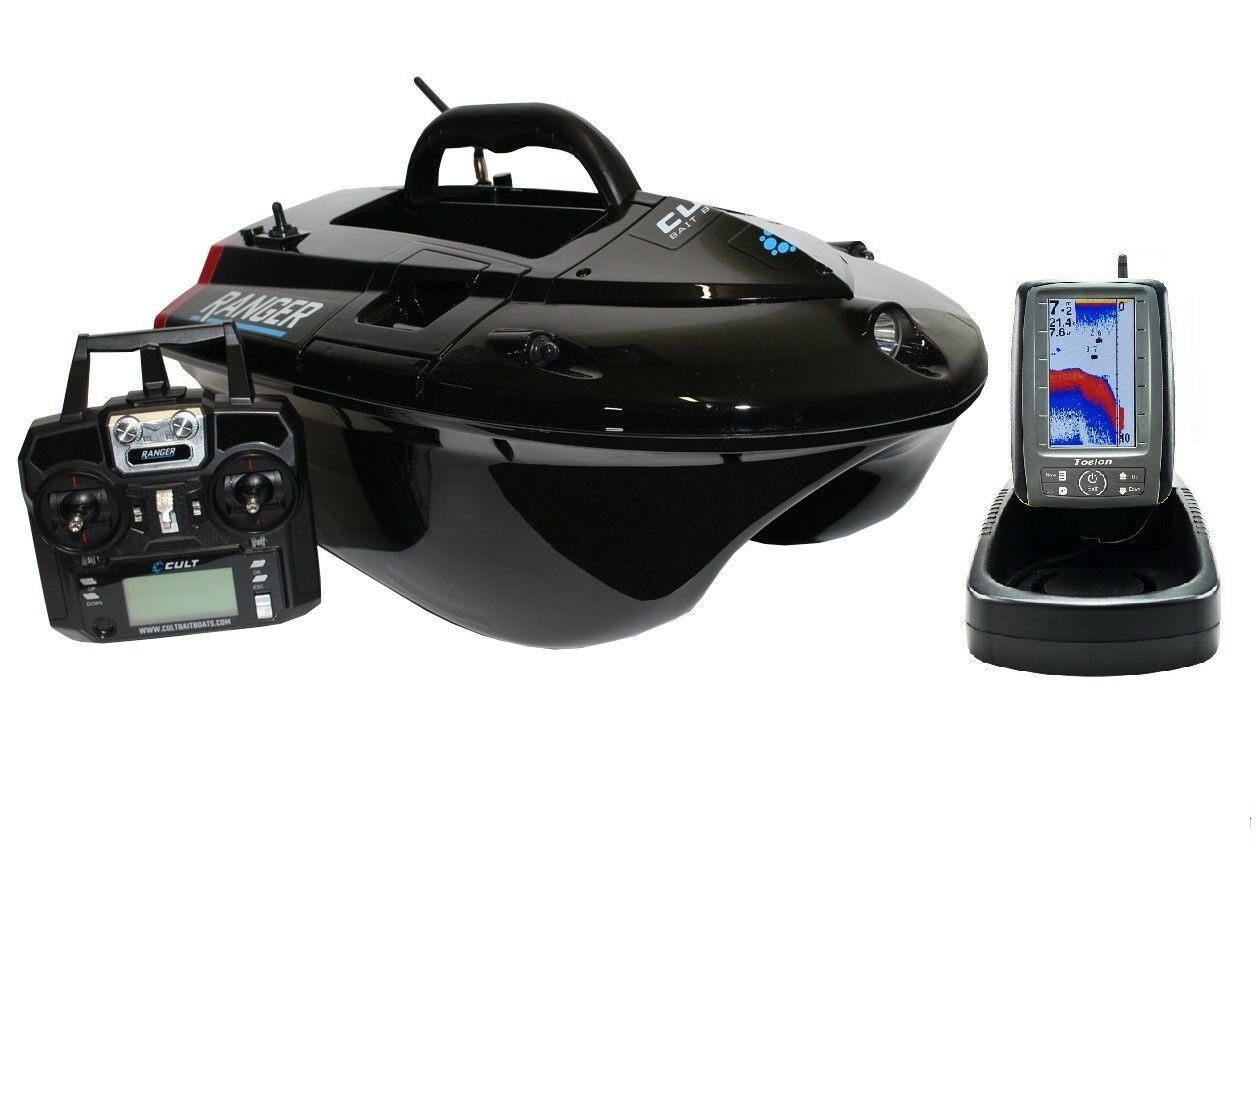 Cult Ranger Bait Boat With Lithium Batteries And Toslon TF500 Fish Finder